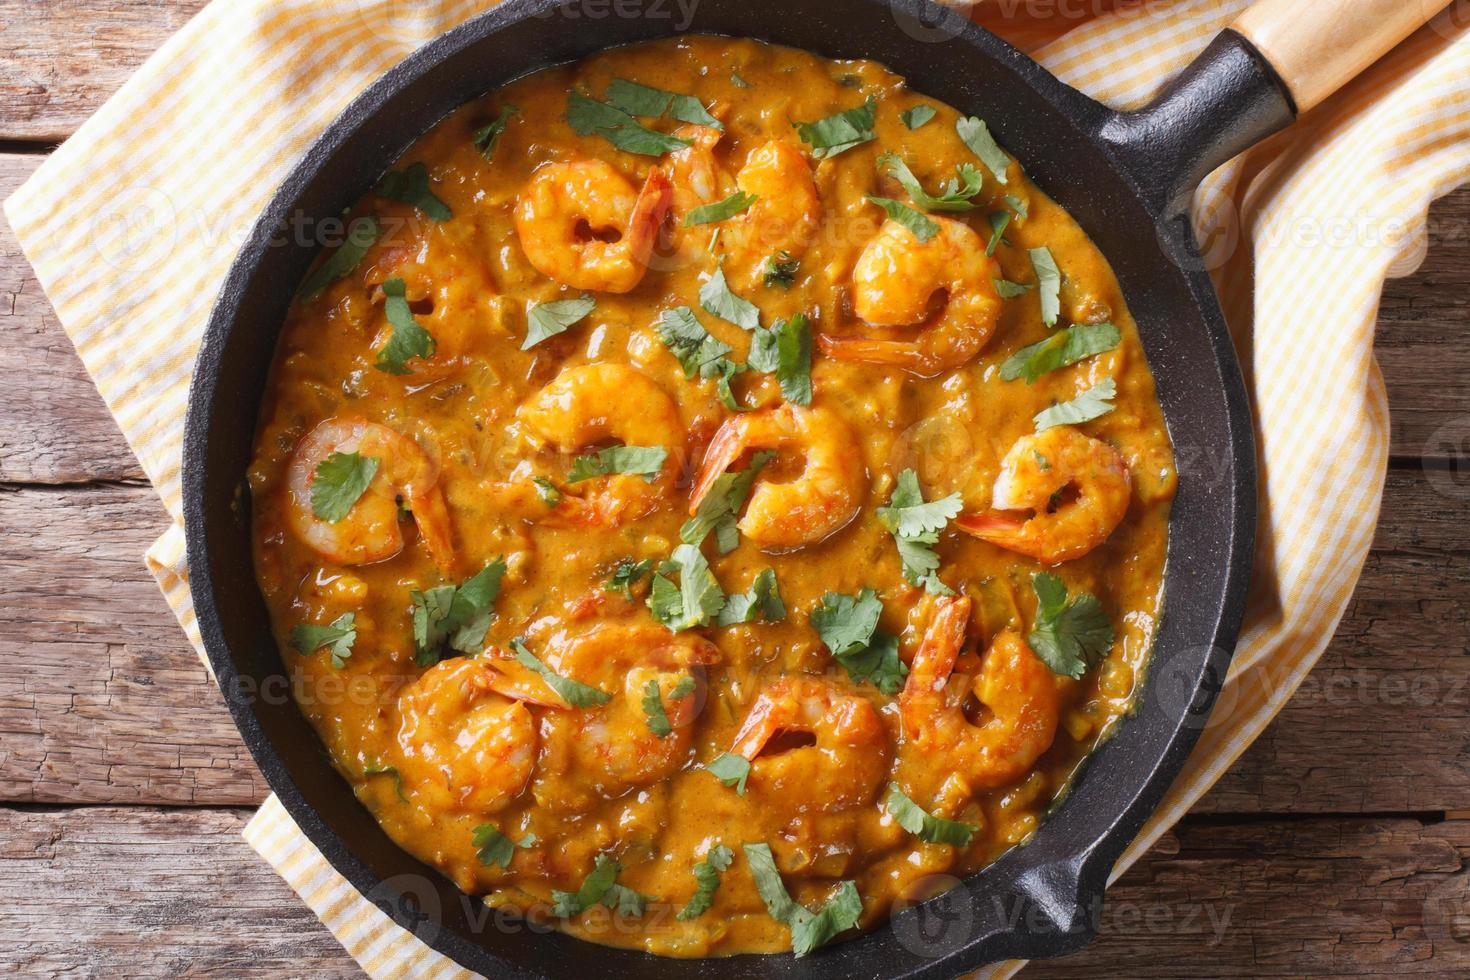 Shrimp in curry sauce in pan close-up horizontal top view photo